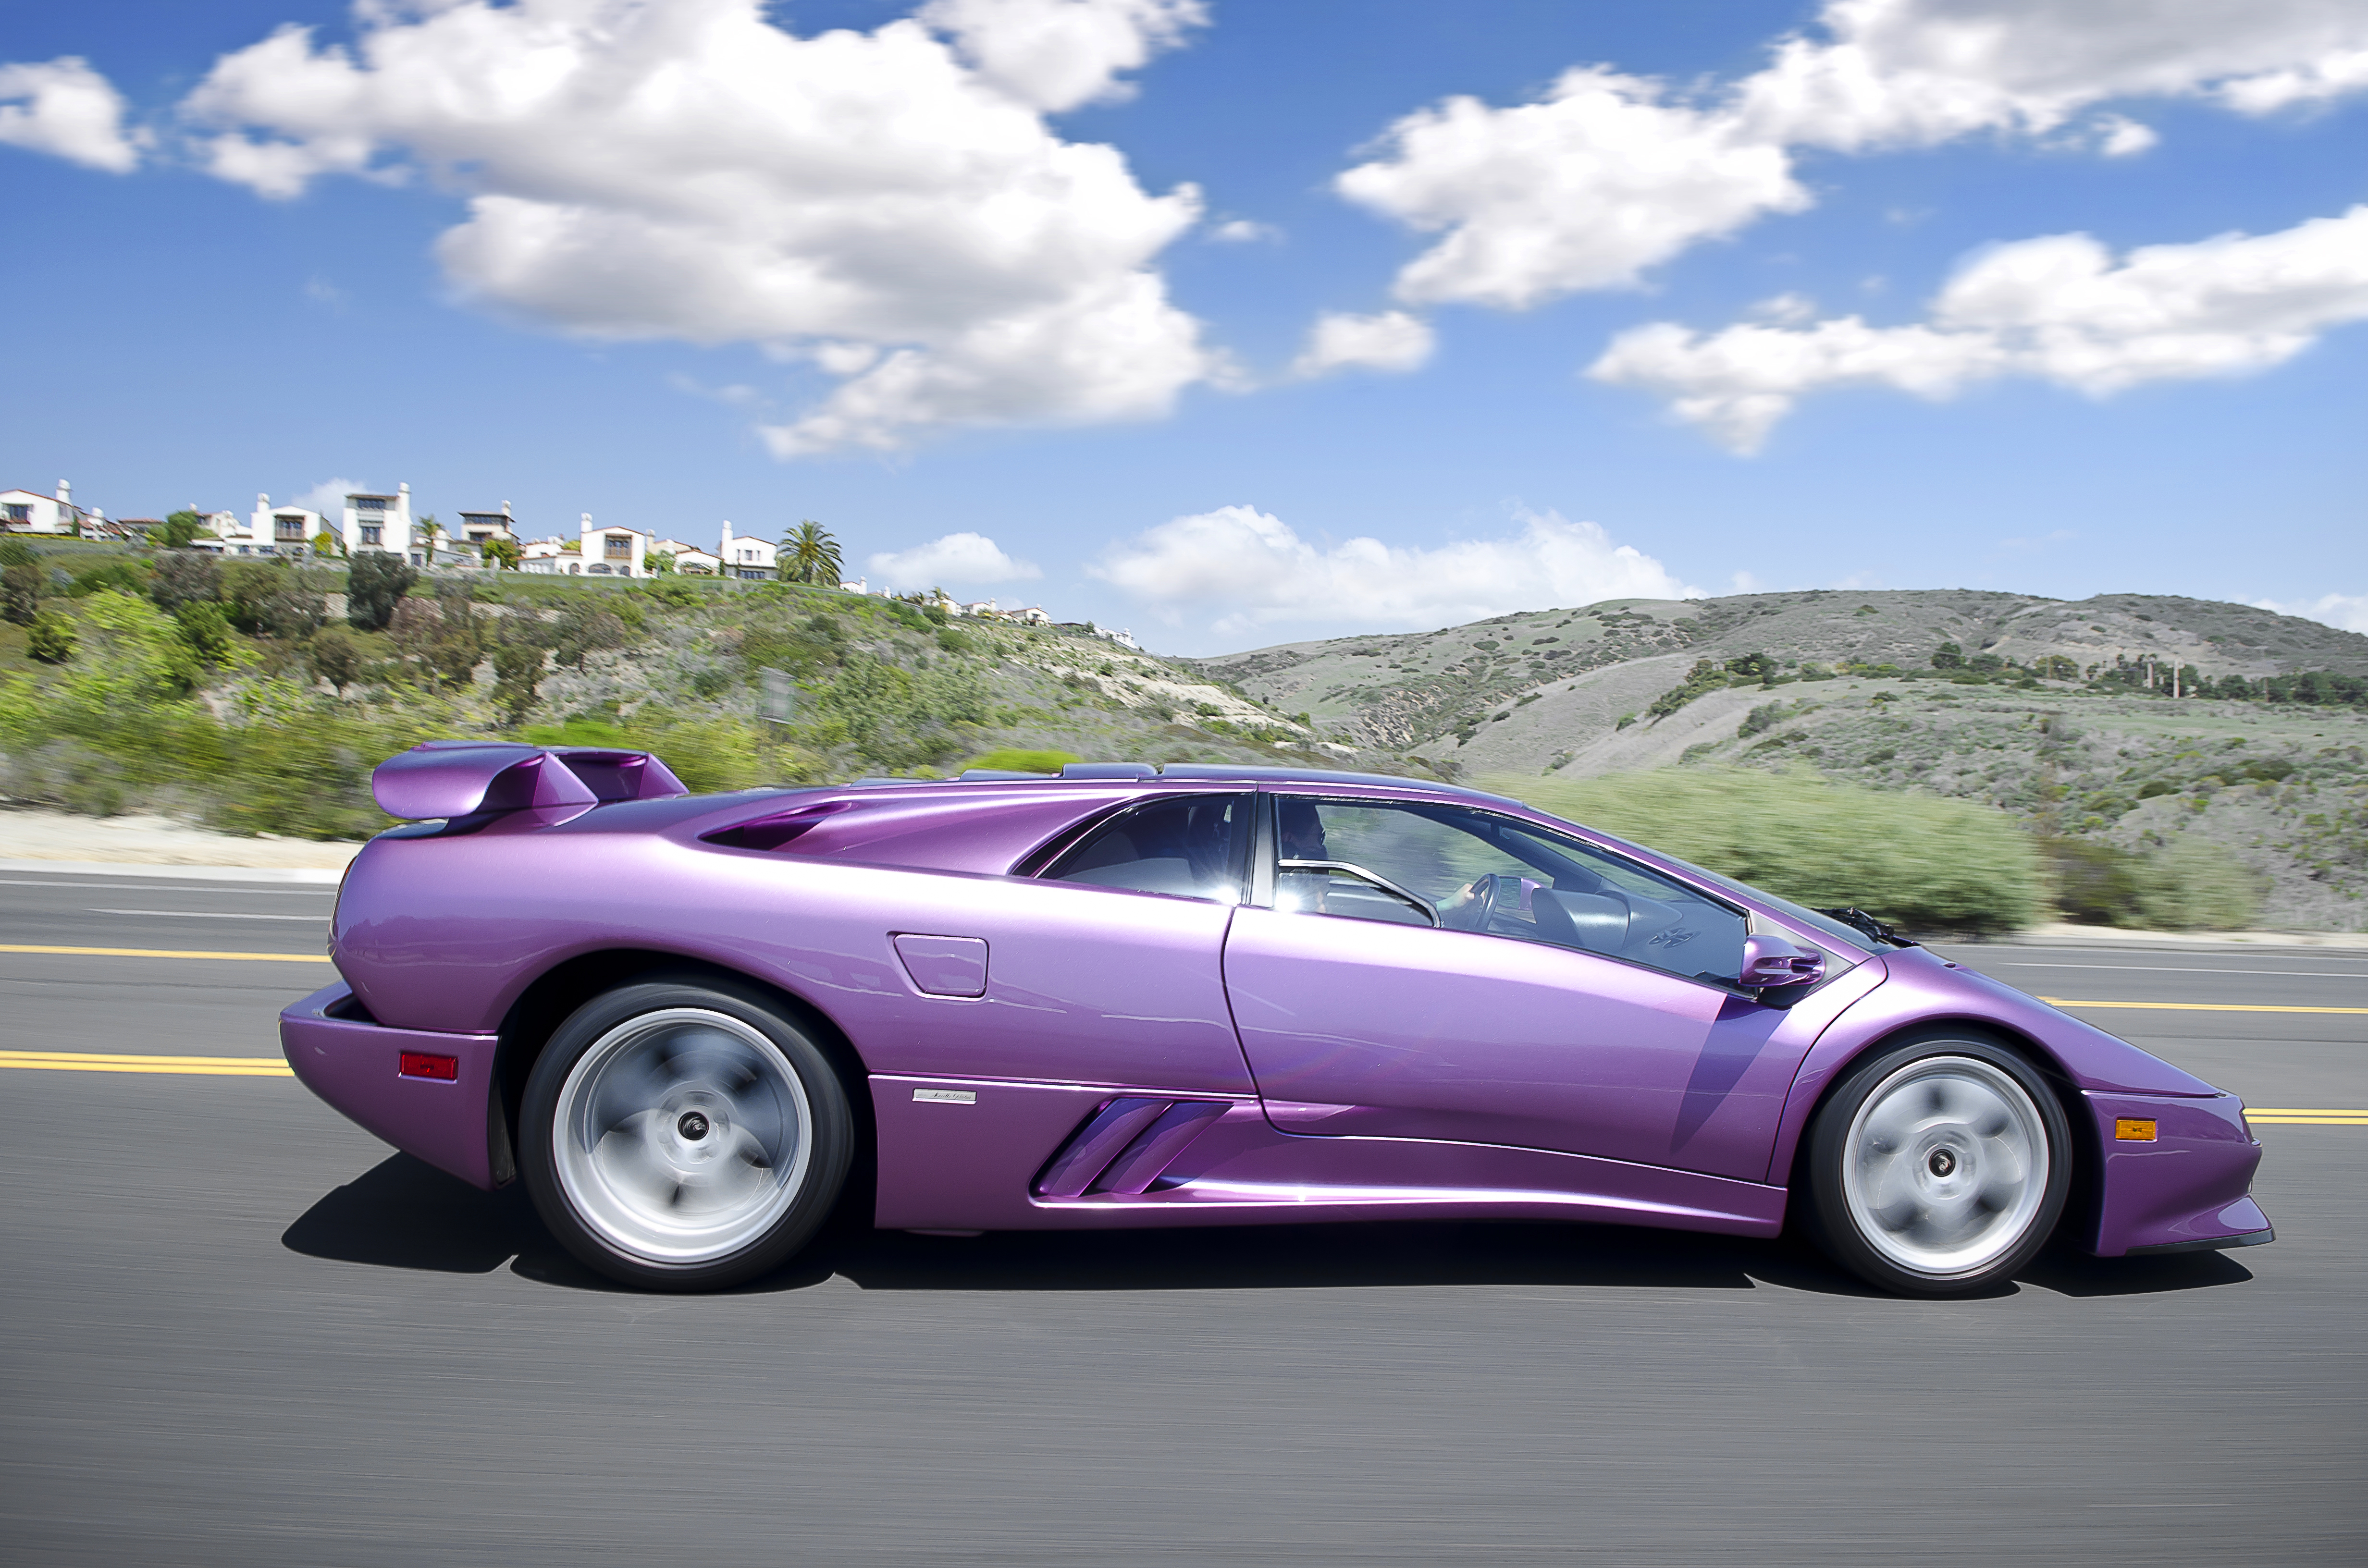 Pictures Of Cool Cars >> Lamborghini Diablo SE30 (Special Edition 30th Anniversary)… | Flickr - Photo Sharing!